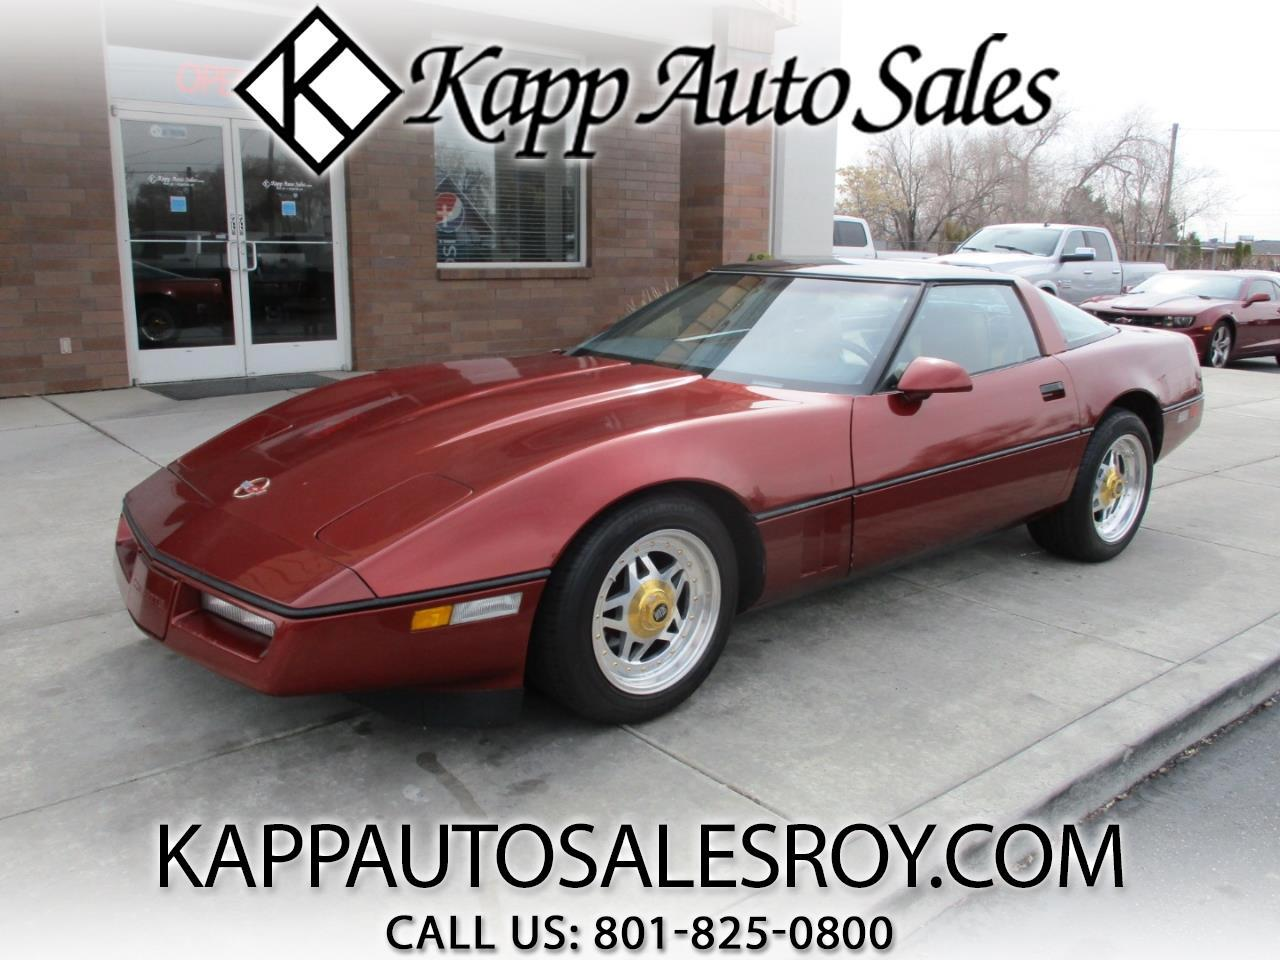 1986 Chevrolet Corvette 2dr Hatchback Coupe